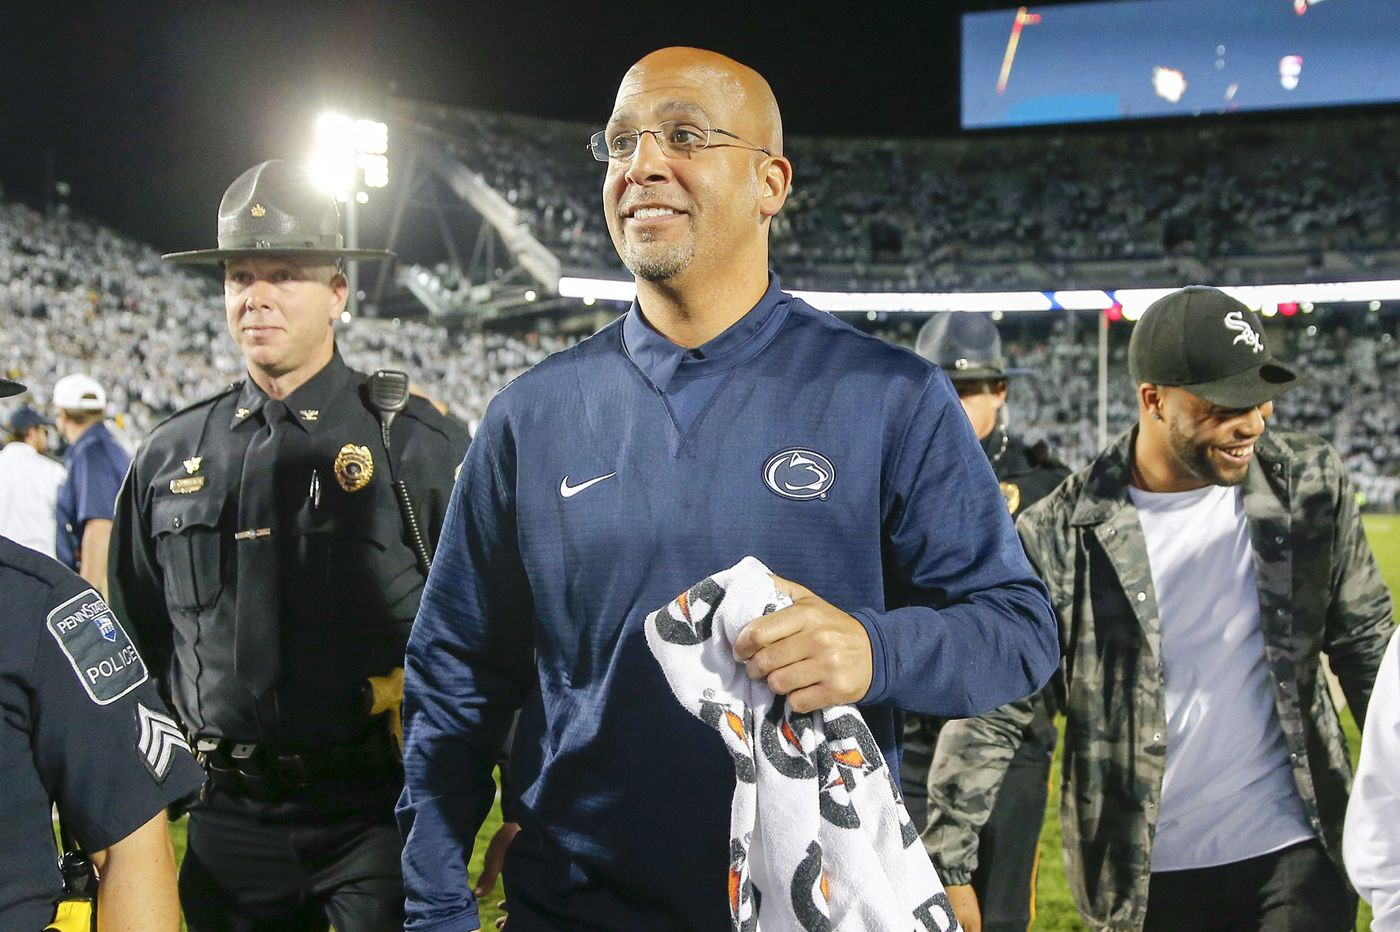 Oregon high school quarterback Michael Johnson Jr. commits to Penn State